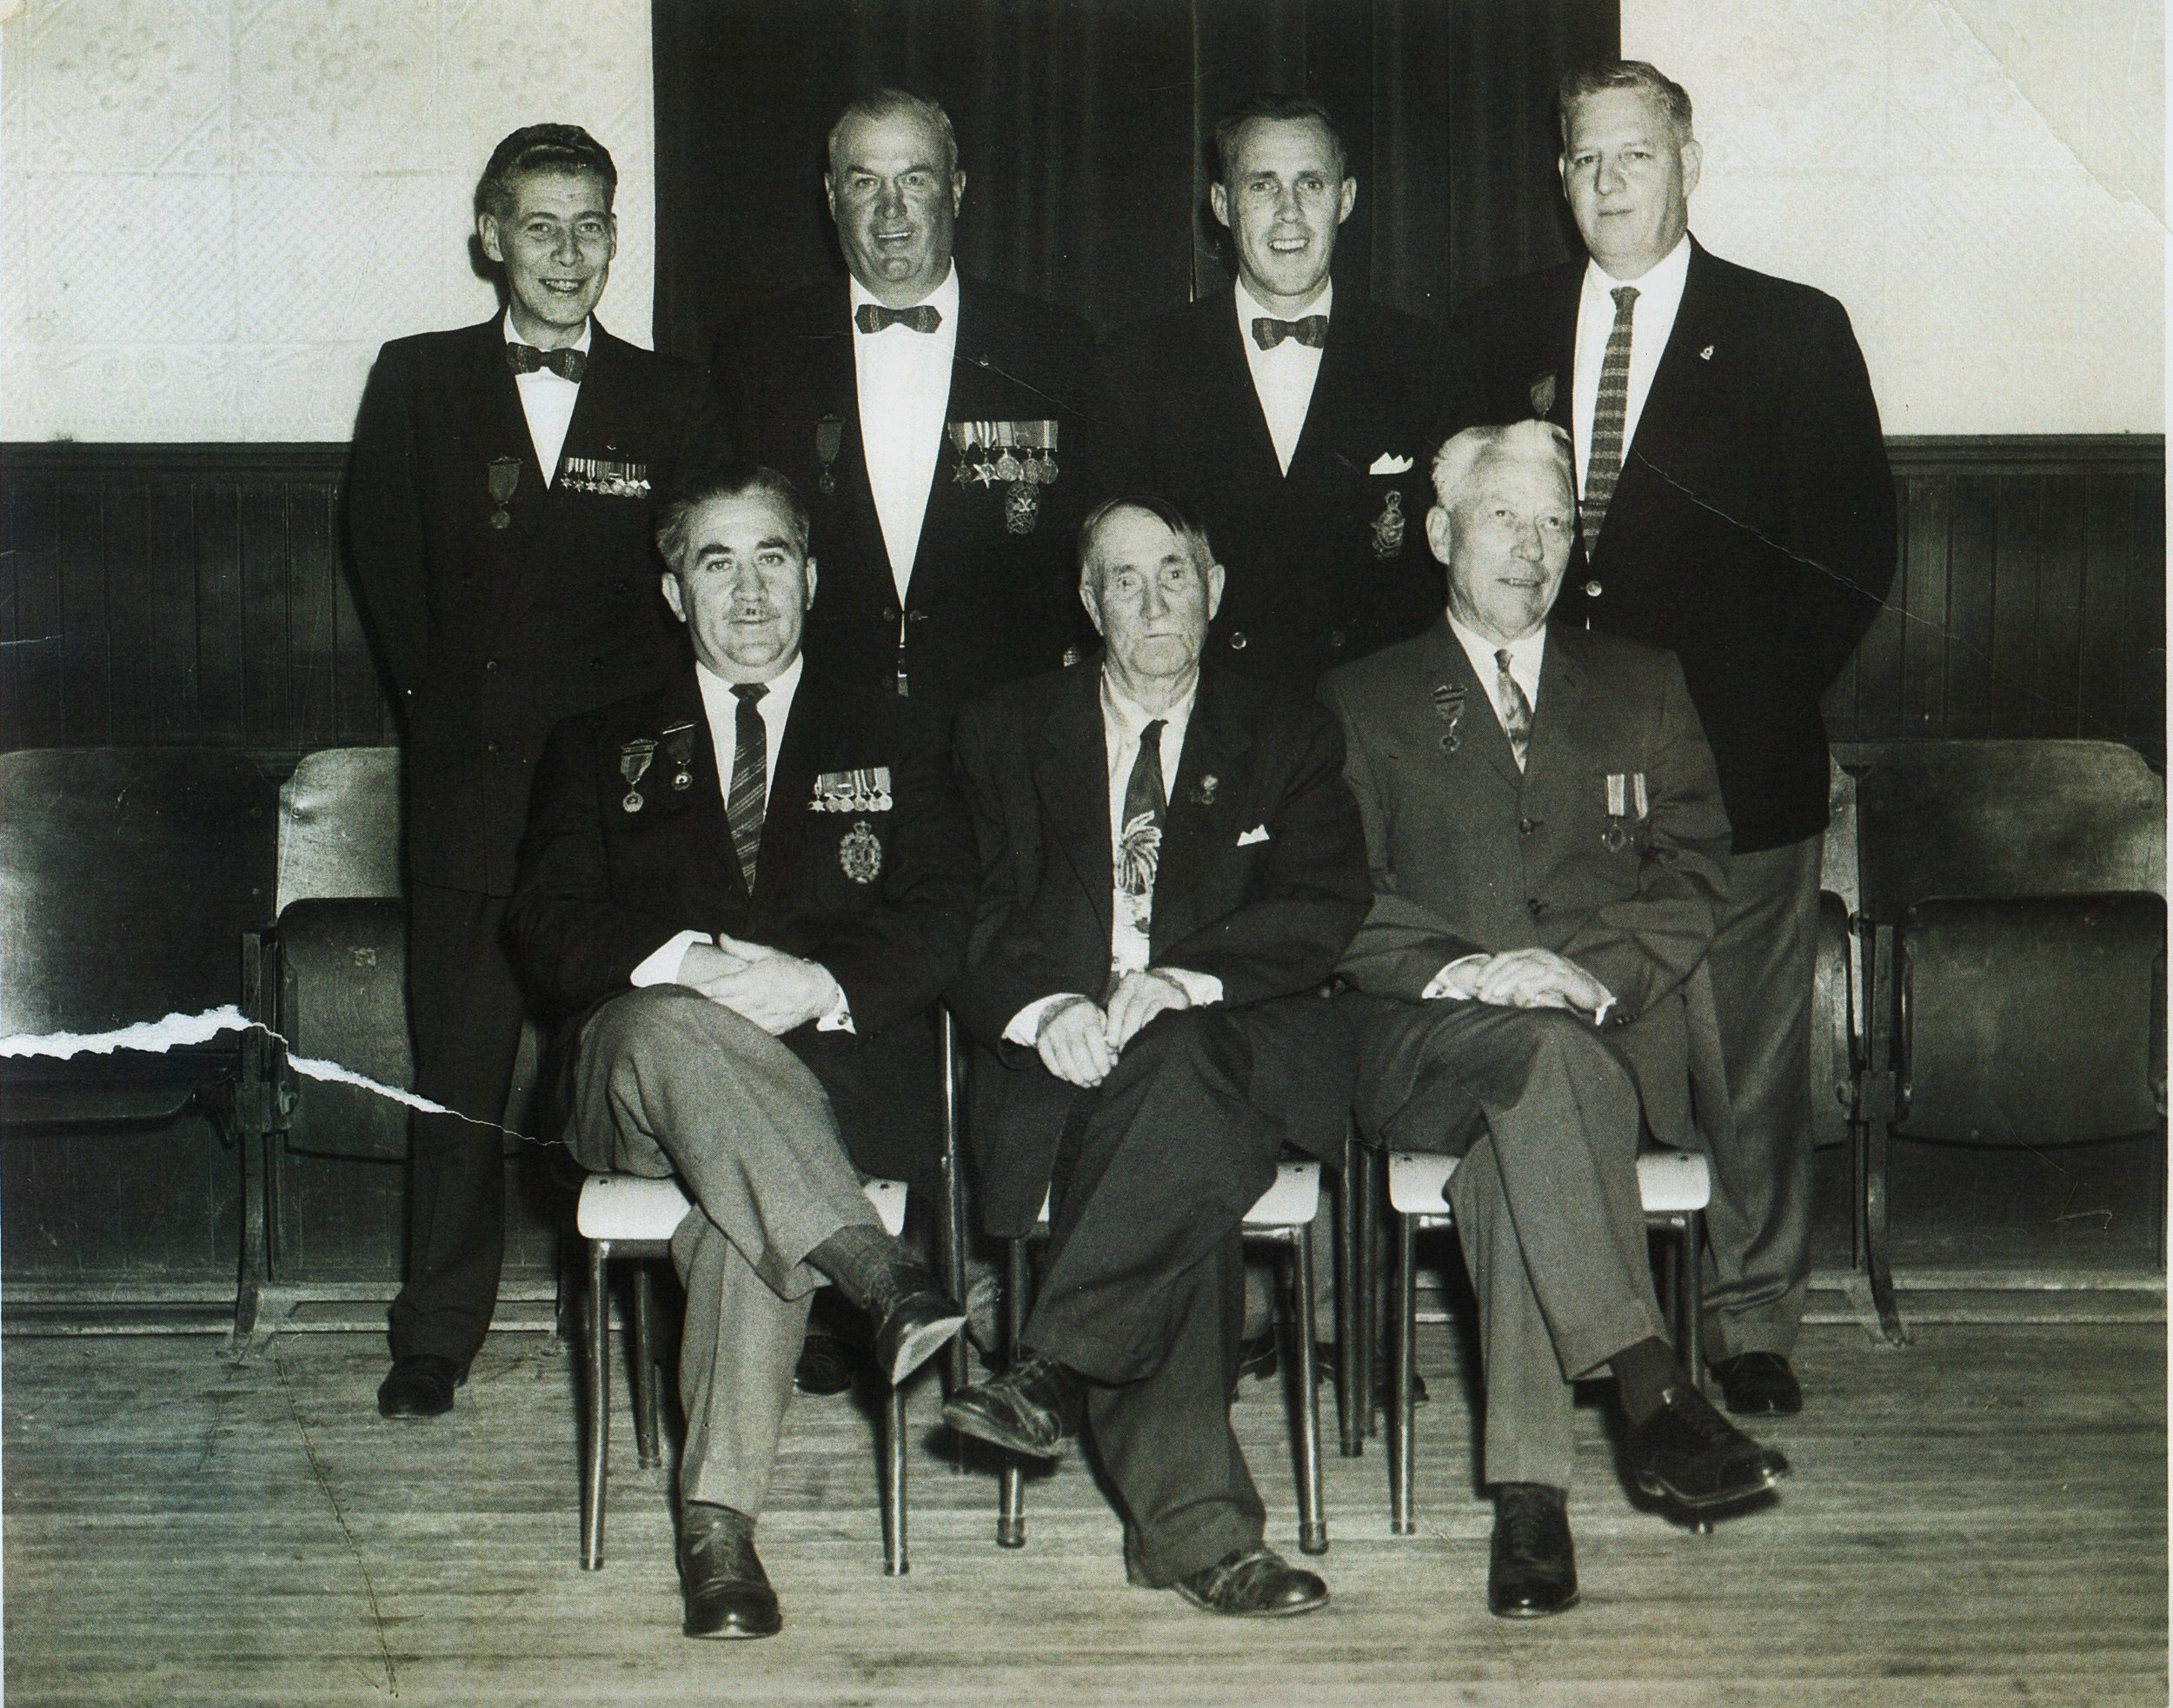 MARMORA LEGION.. BACK ROW L TO R. CLAYTON BEDORE; JIM RATHWELL; TINK KERR; BOB GRAY...FRONT ROW PERCY GRAY; REDDIE BARTLETT; BILL REGAN